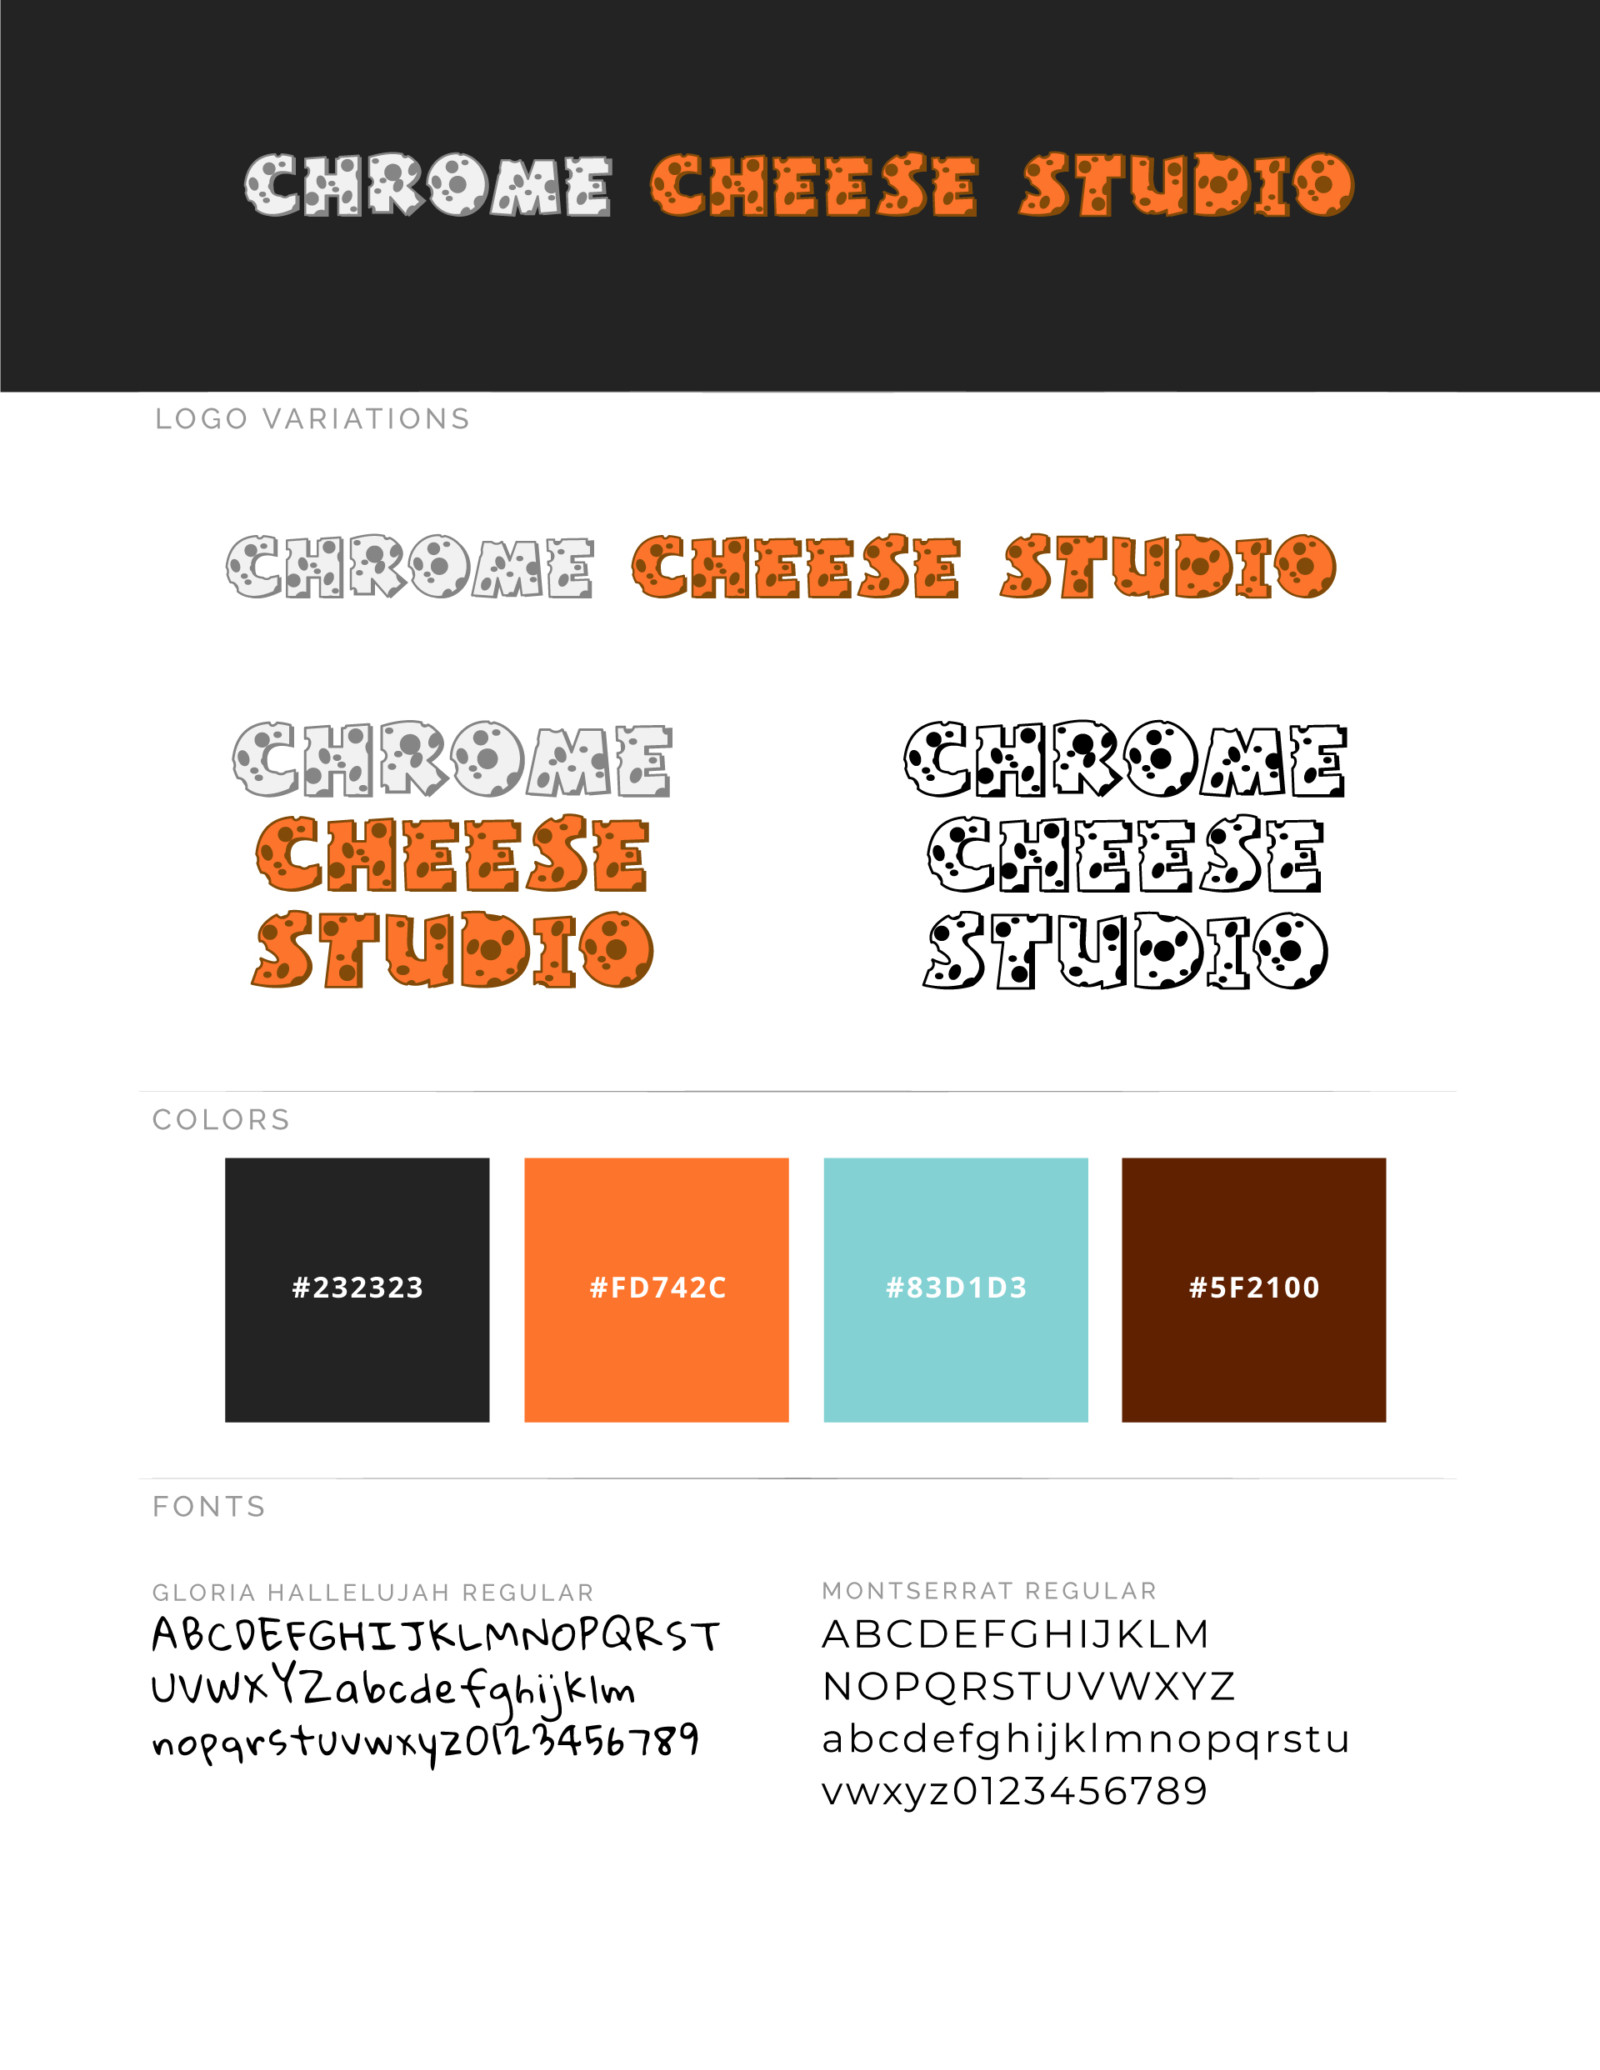 Chrome Cheese Studio Brand Guide